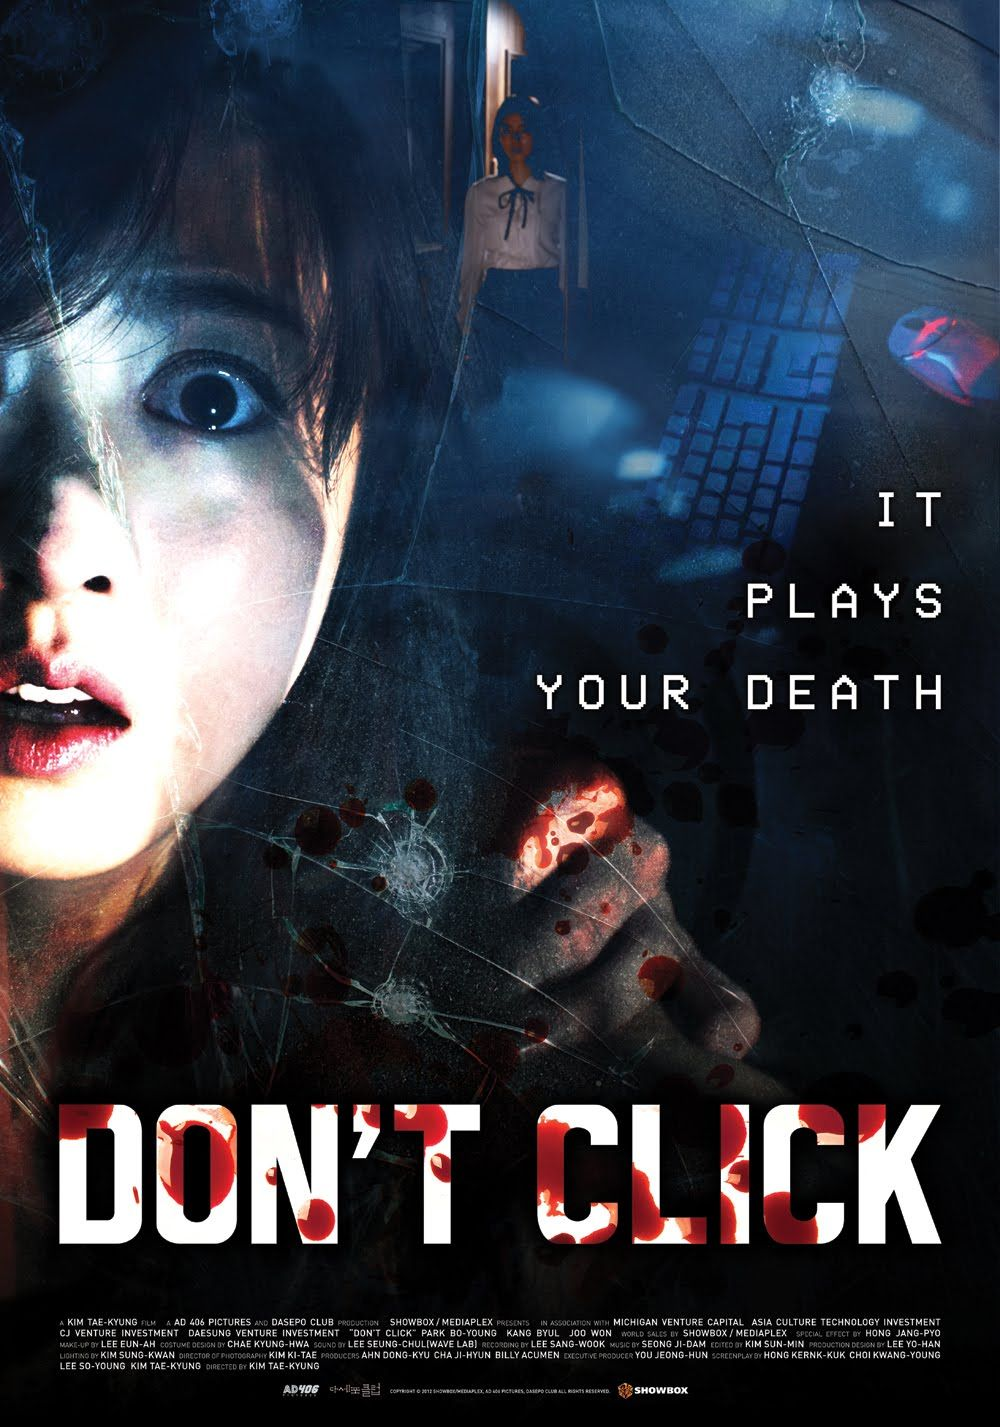 Don't Click (2018) | Horror Movie Posters in 2019 | Streaming movies